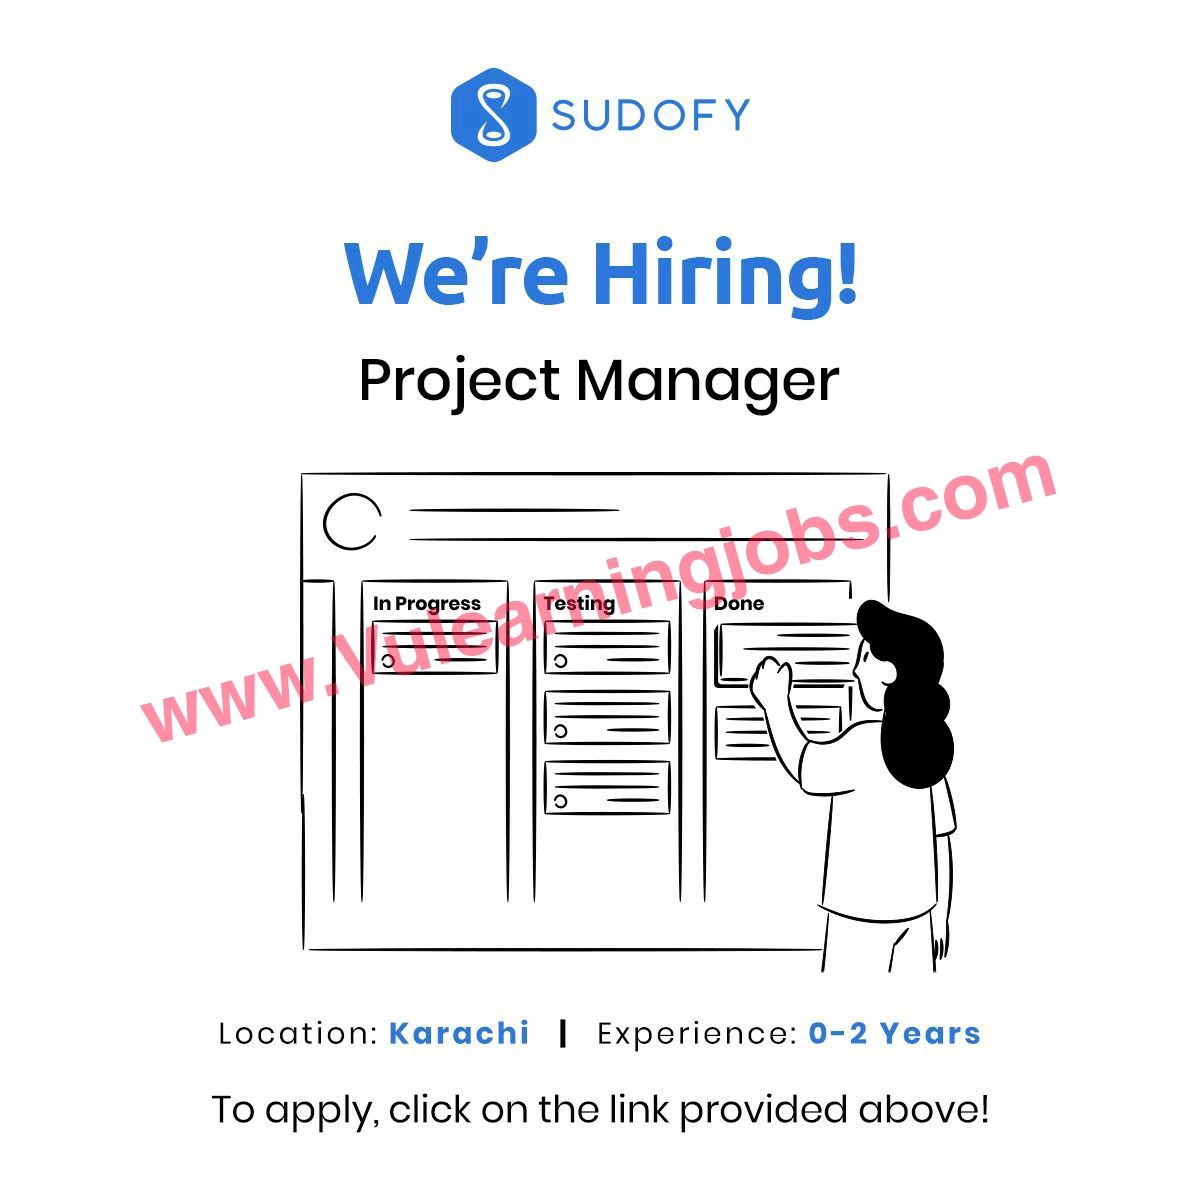 Sudofy Jobs July 2021 Project Manager, UI/UX Engineer Latest